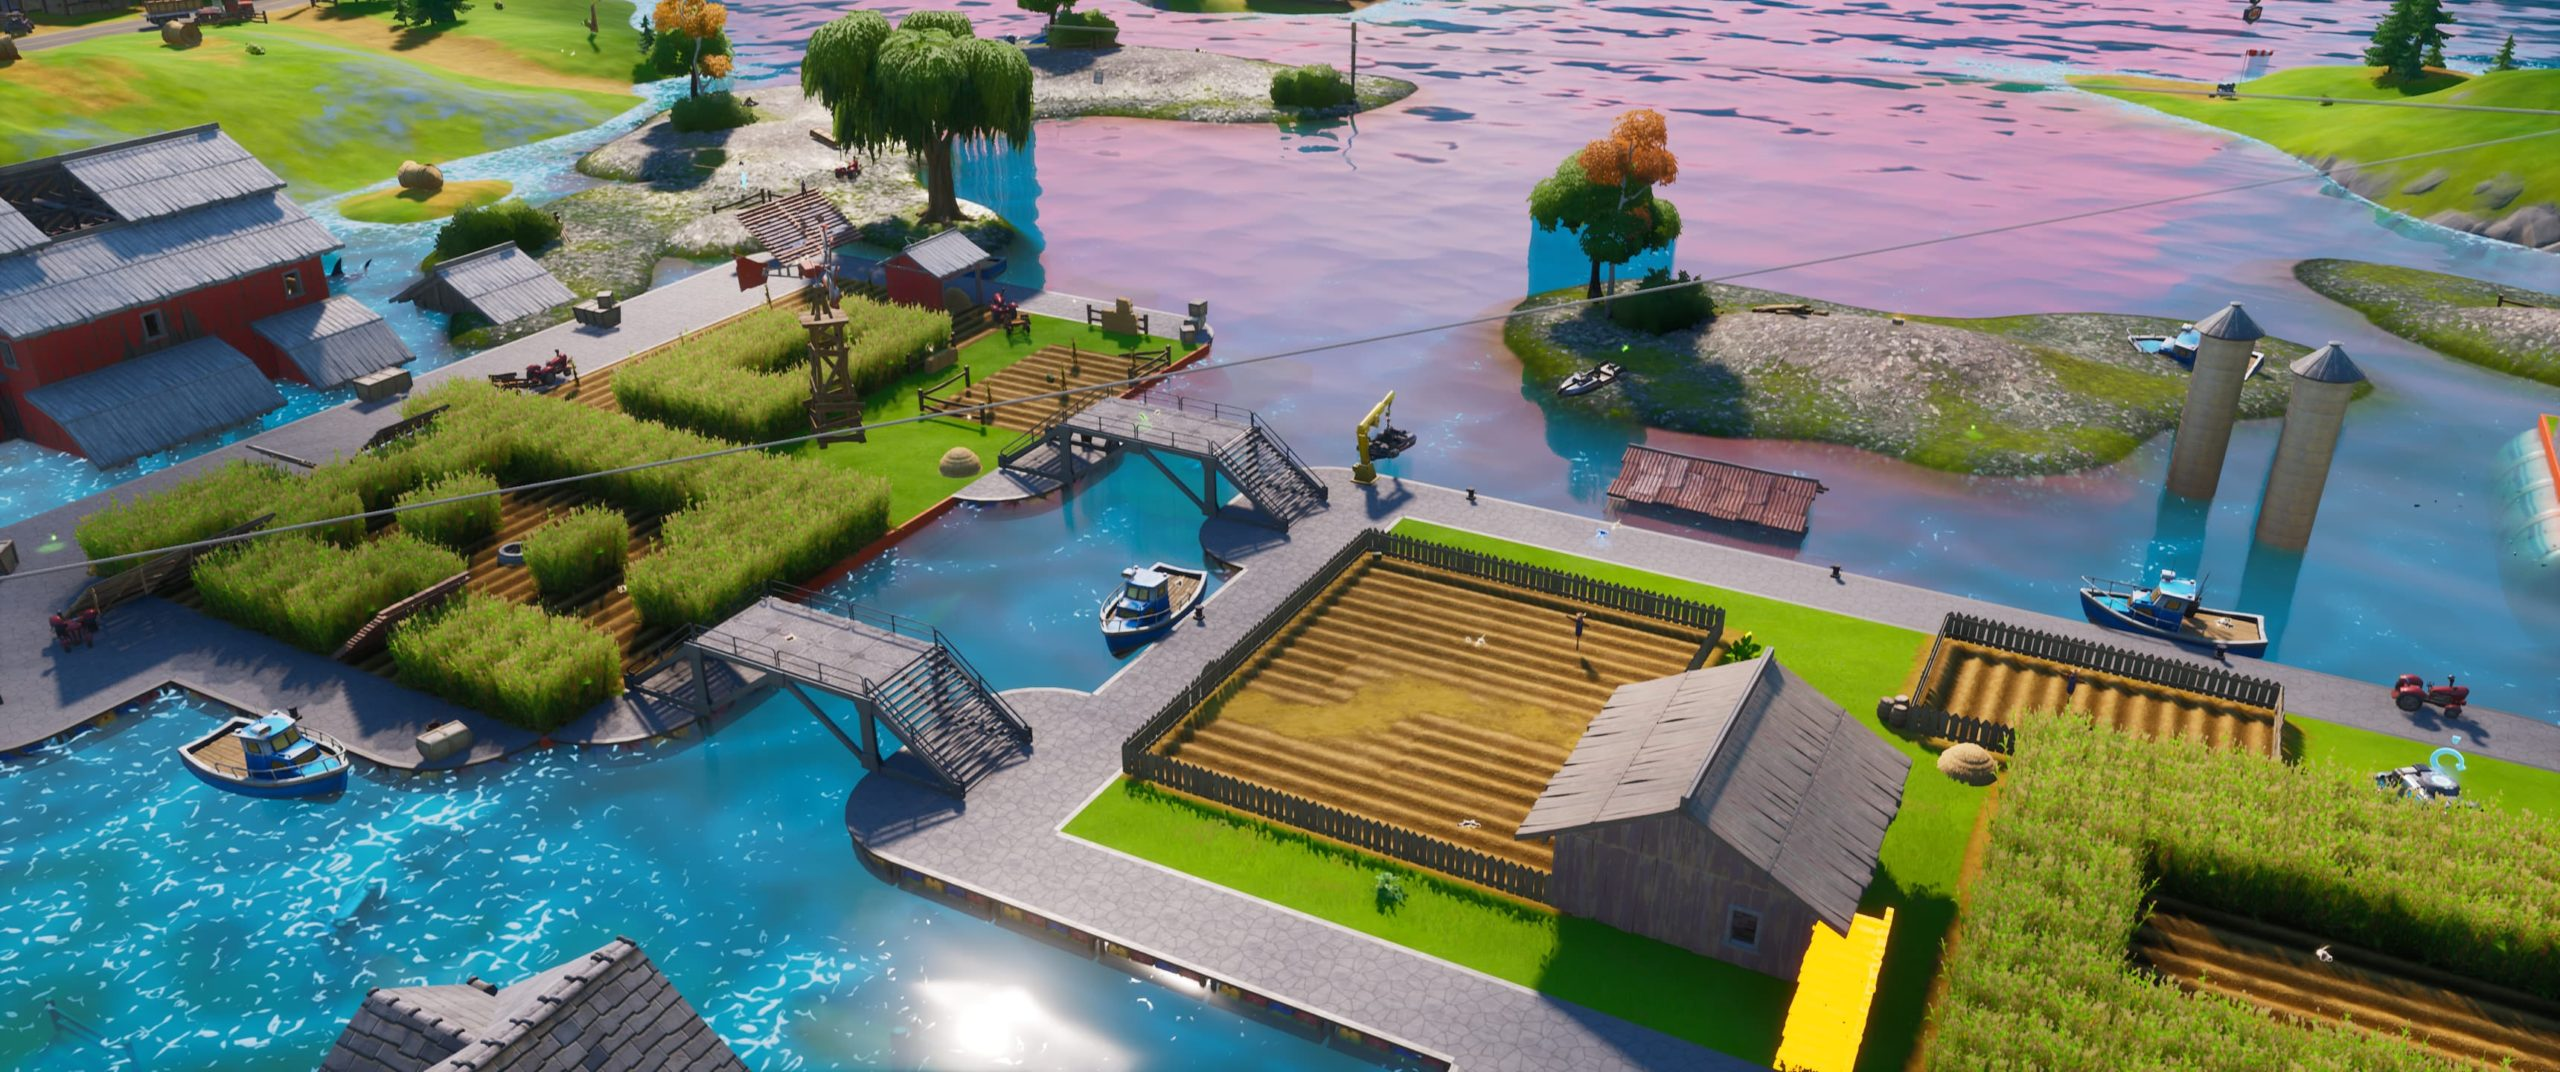 Frenzy Farm Fortnite Location How To Deal Damage From Inside A Cornfield At Frenzy Farm In Fortnite Chapter 2 Season 3 Gamepur